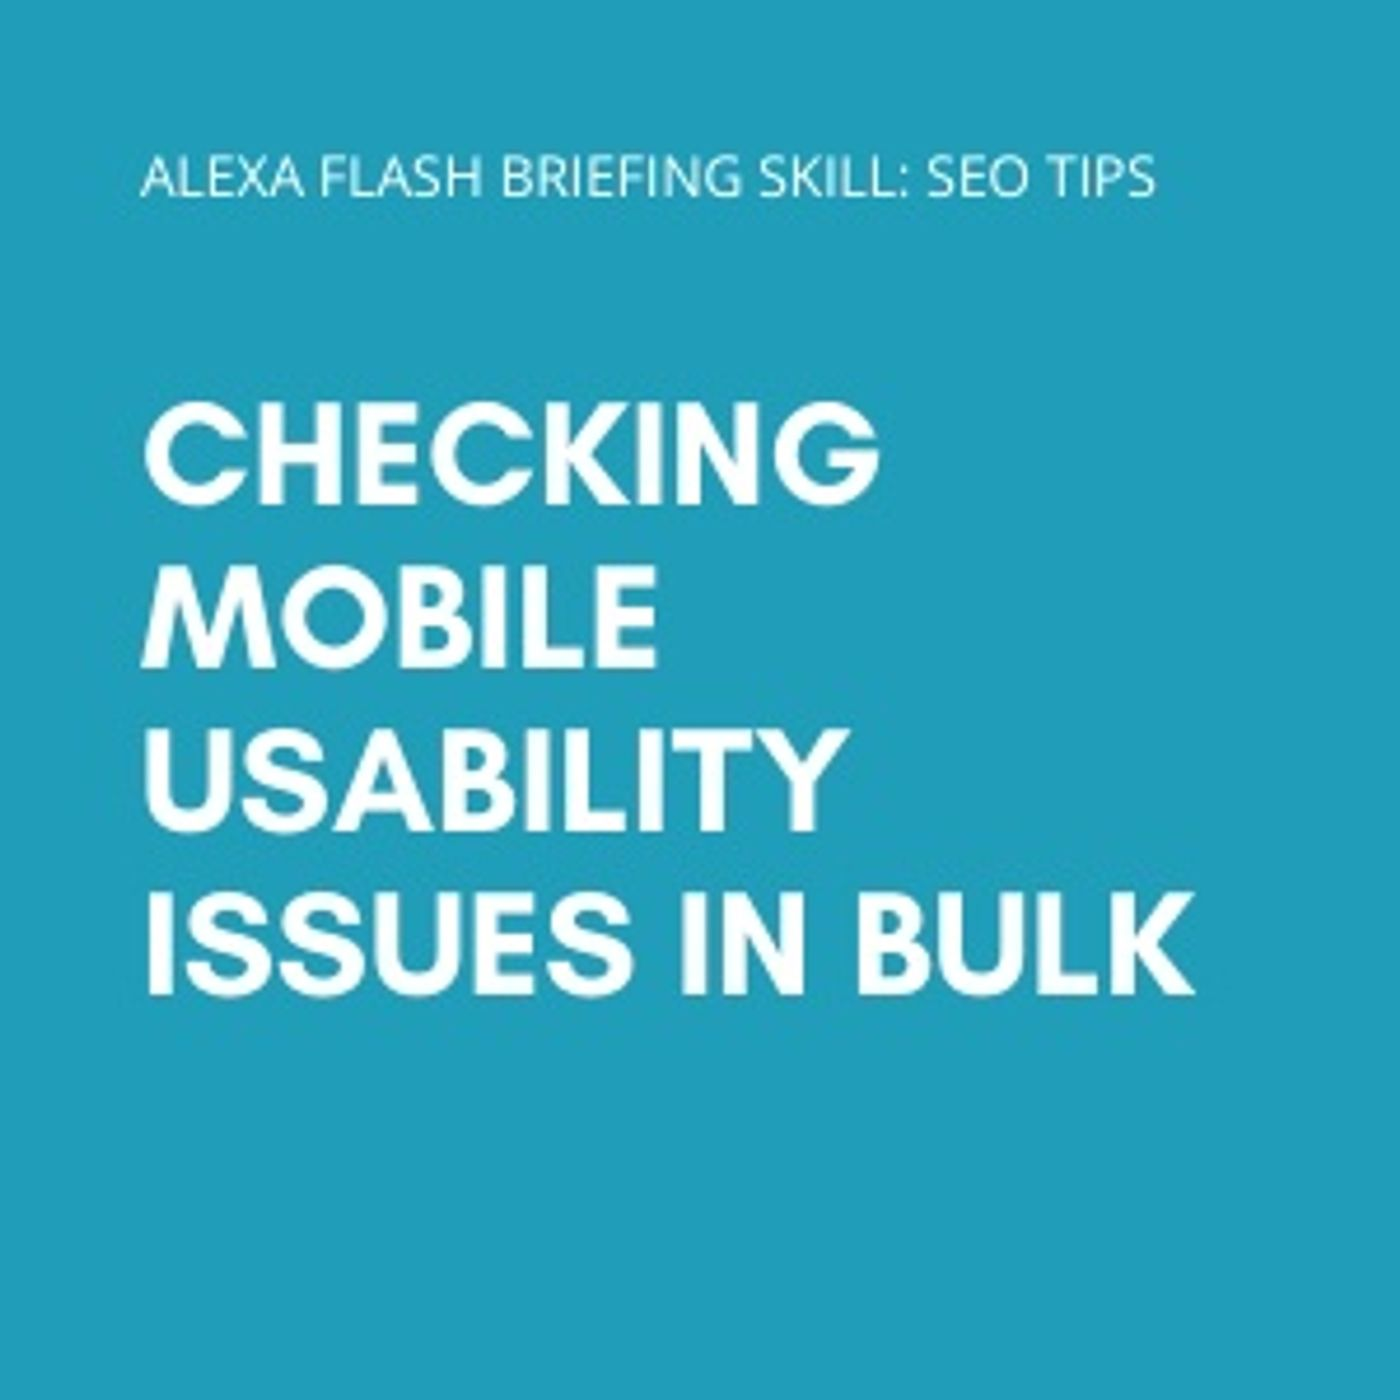 Checking mobile usability issues in bulk